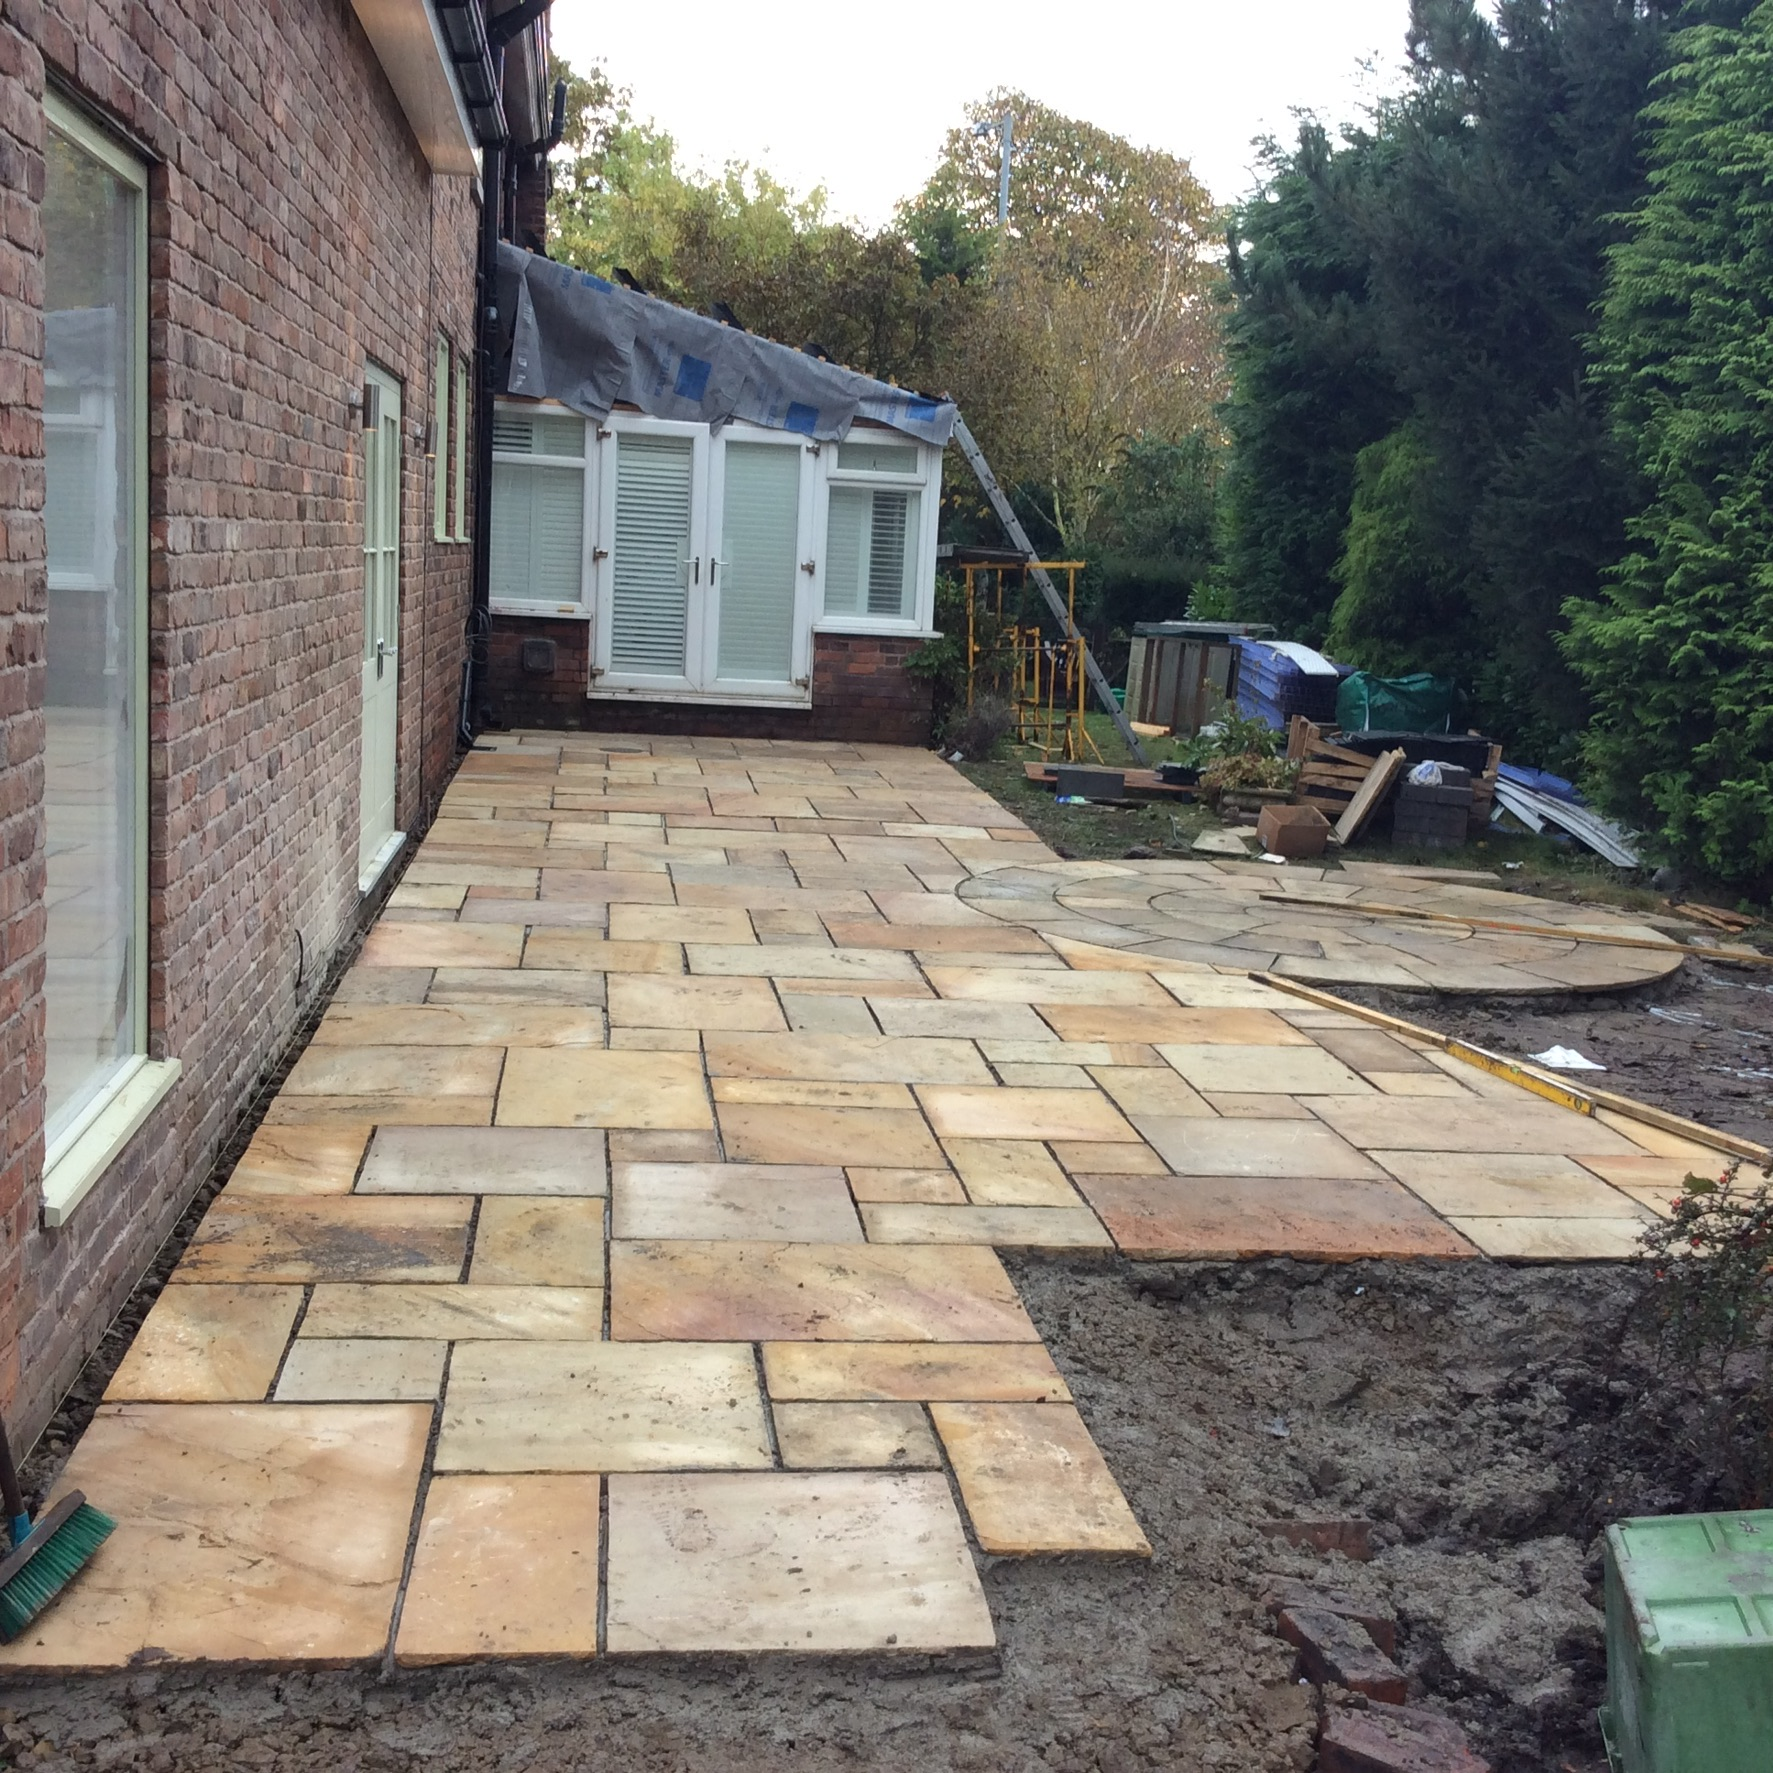 Installation Of New Indian Stone Patio In Burscough, Ormskirk. Lancashire.  We Are Specialist In All Types Of Patios , Paving And Driveways.